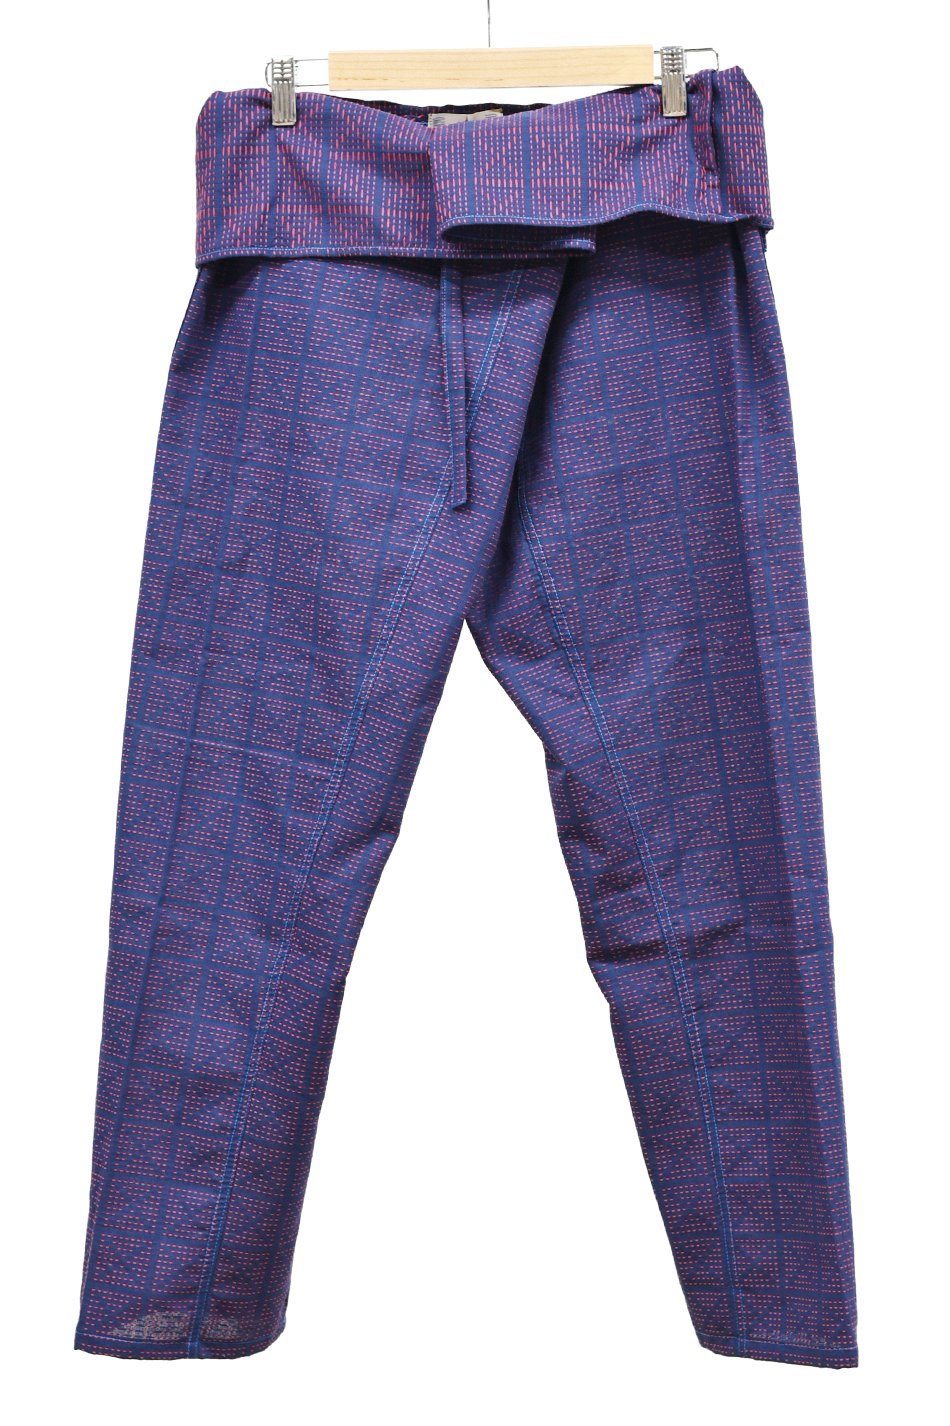 ARIGATO FAKKYU - アリガトファッキュ TAPERED THAI PANTS / NAVY RED<img class='new_mark_img2' src='https://img.shop-pro.jp/img/new/icons5.gif' style='border:none;display:inline;margin:0px;padding:0px;width:auto;' />